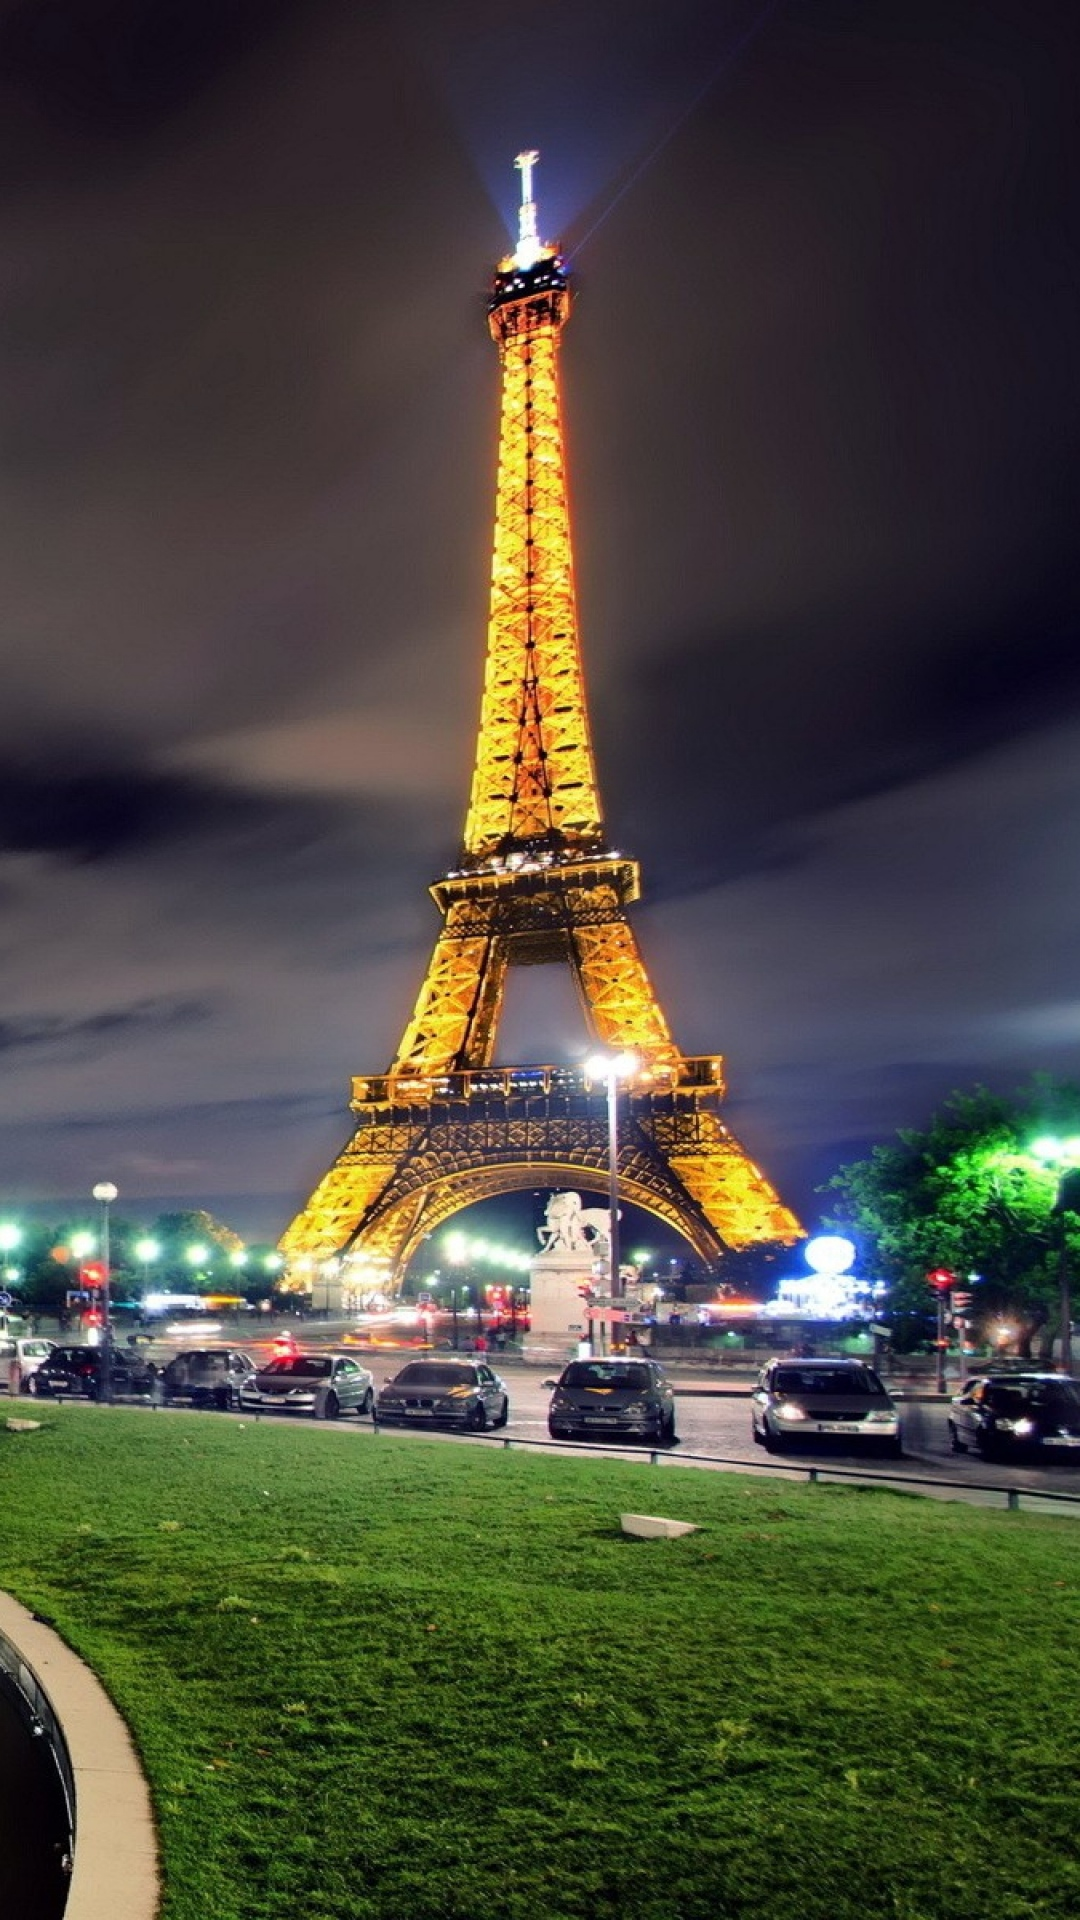 france-paris-eiffel-tower-light-night-hdr-wallpaper-wp3605771